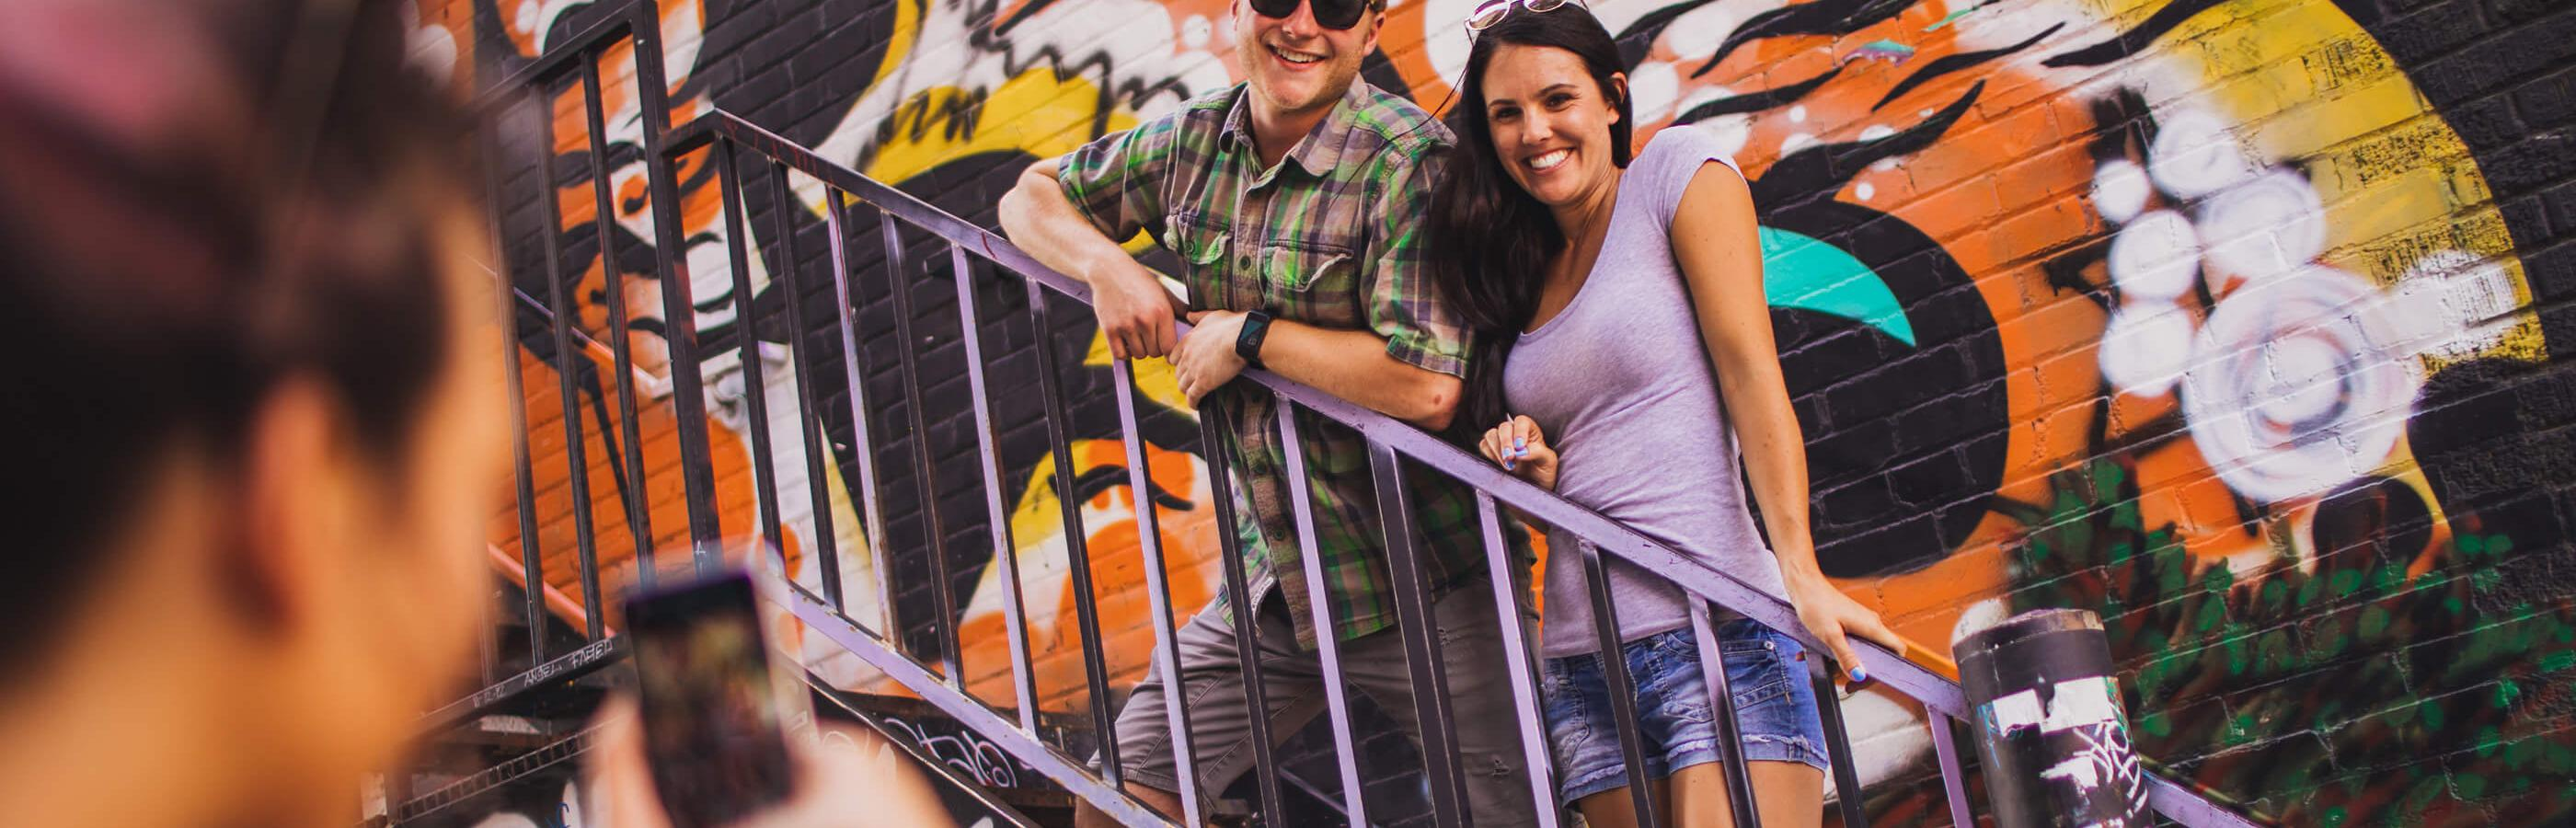 Two people posing in Art Alley Rapid City SOuth Dakota